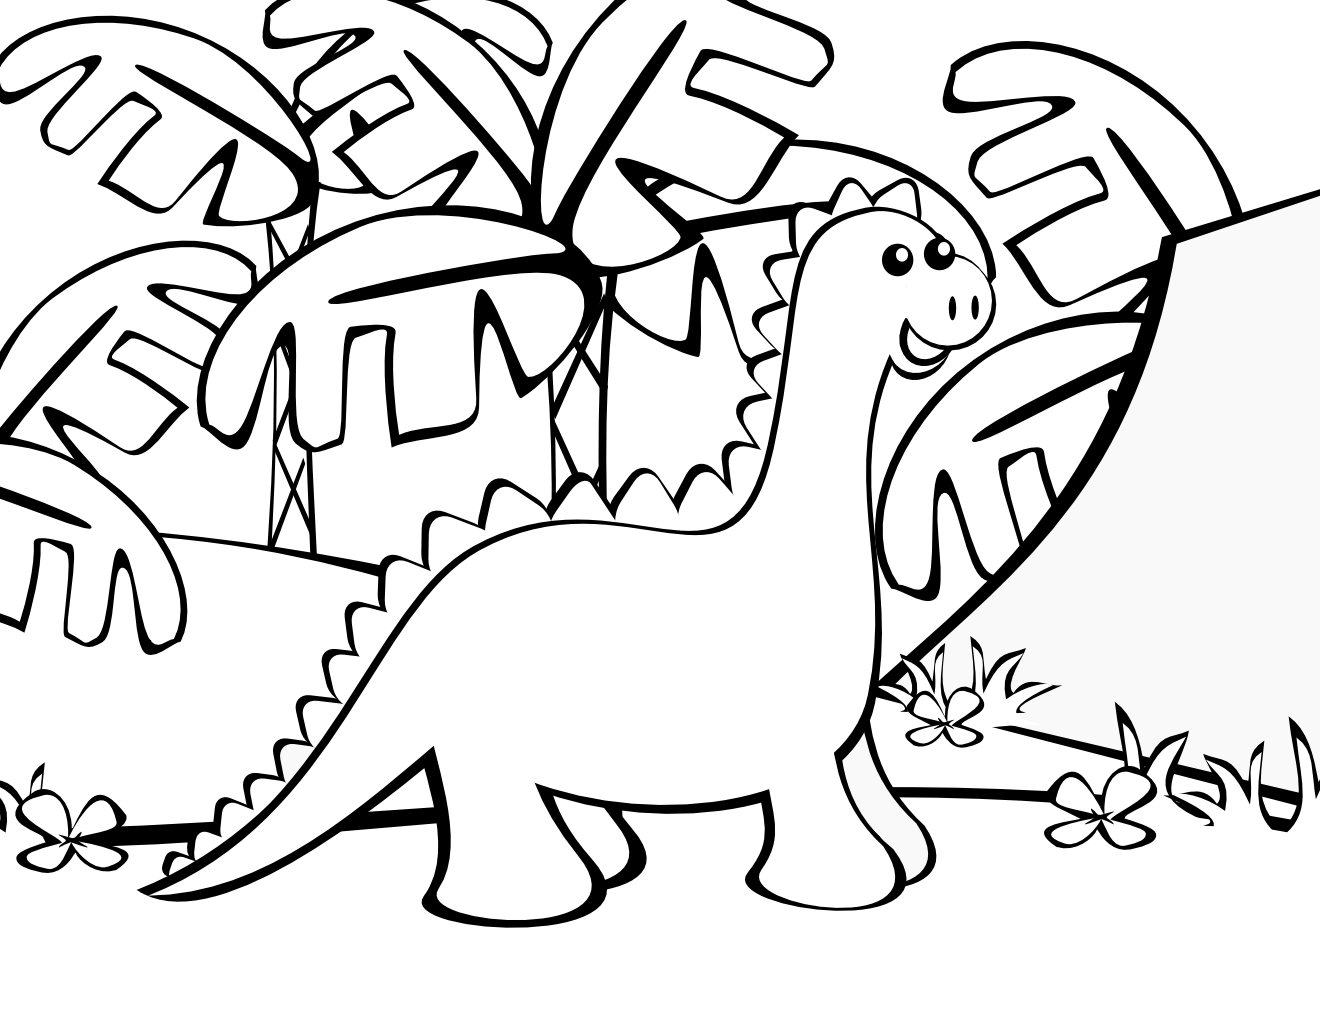 dinosaur color free printable dinosaur coloring pages for kids dinosaur color